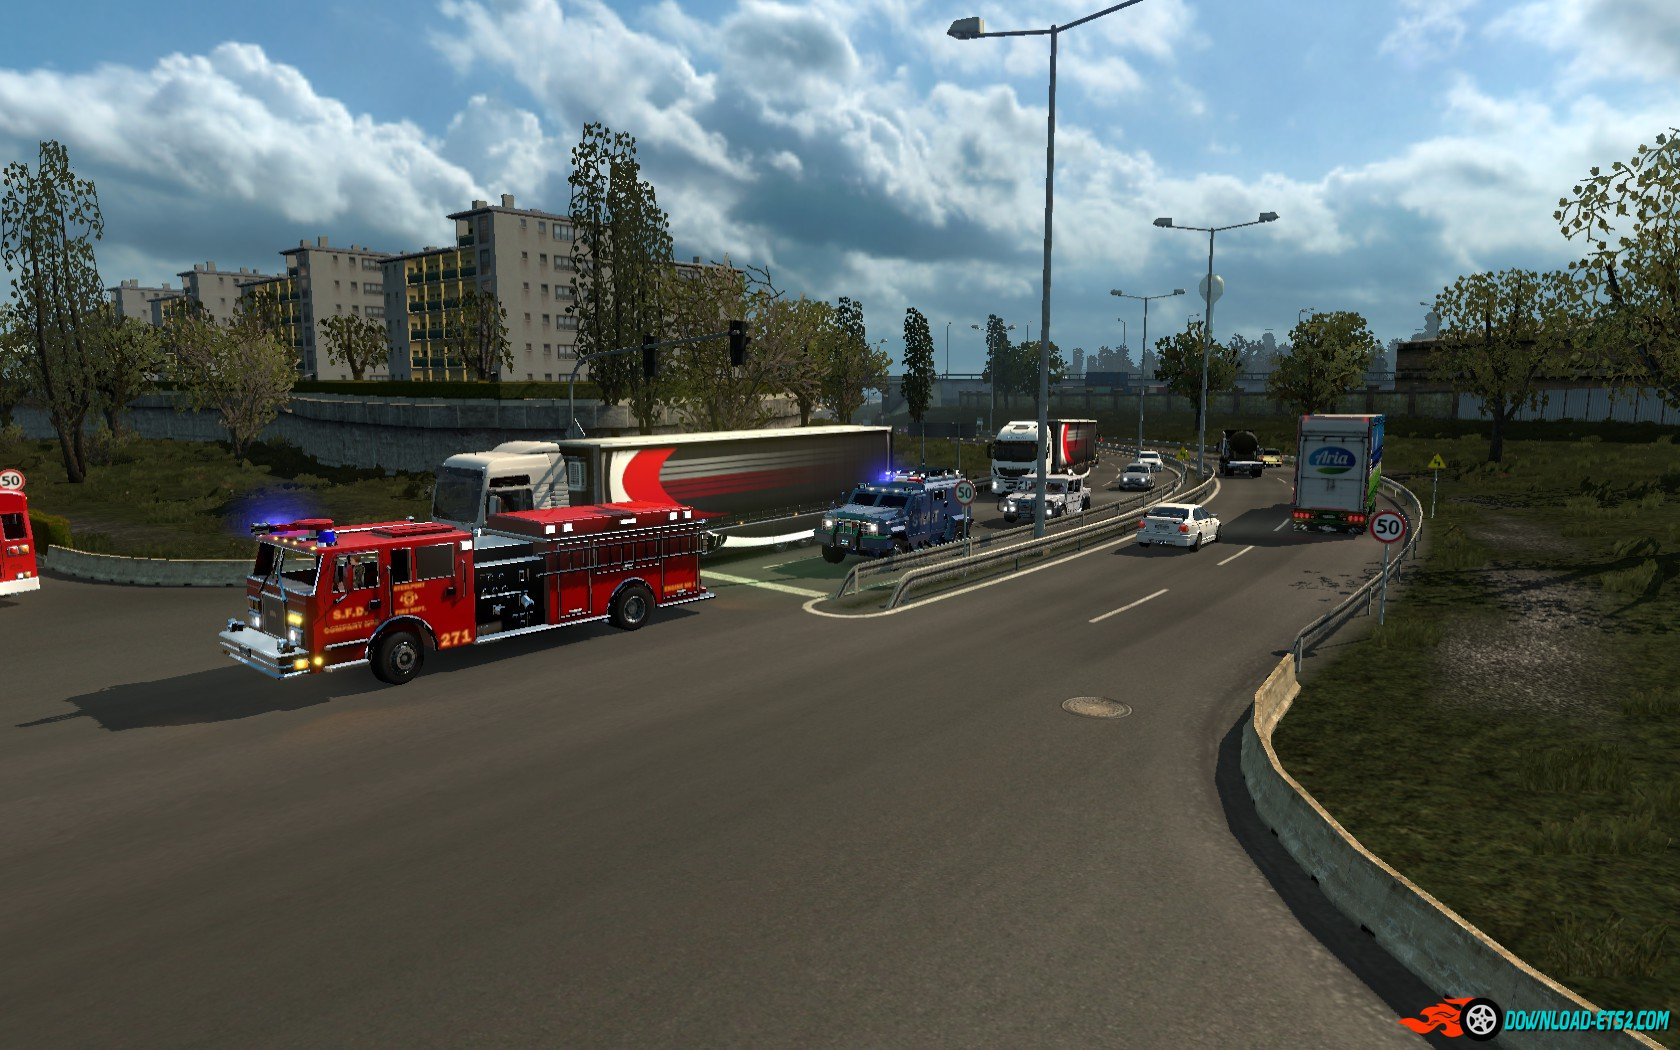 SAINTS ROW 3 TRAFFIC PACK by alkonavt96